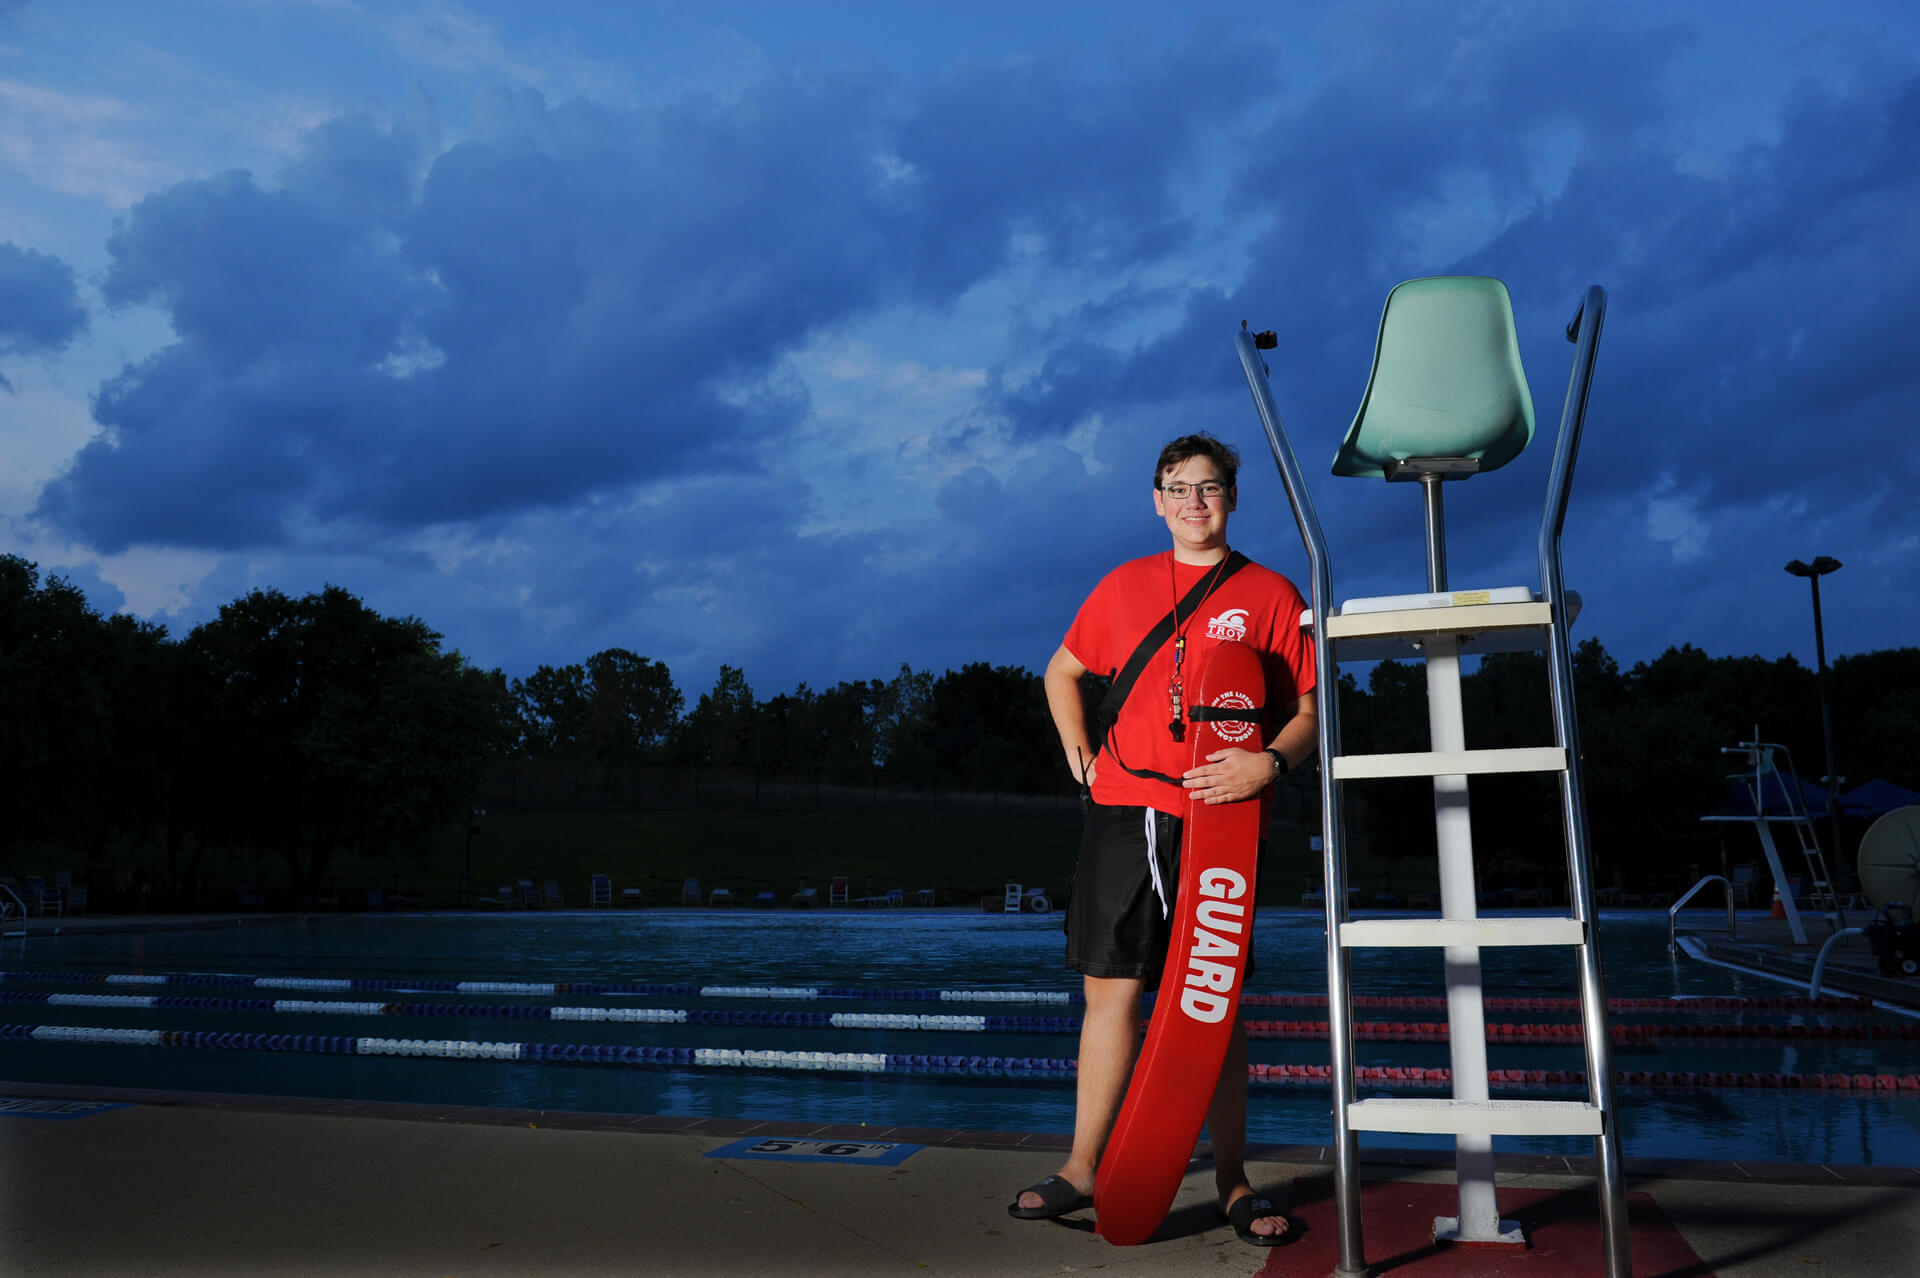 Lifeguard and Troy High senior poses at his Troy pool at dusk for this dramatic and creative senior photo near Troy, Michigan.